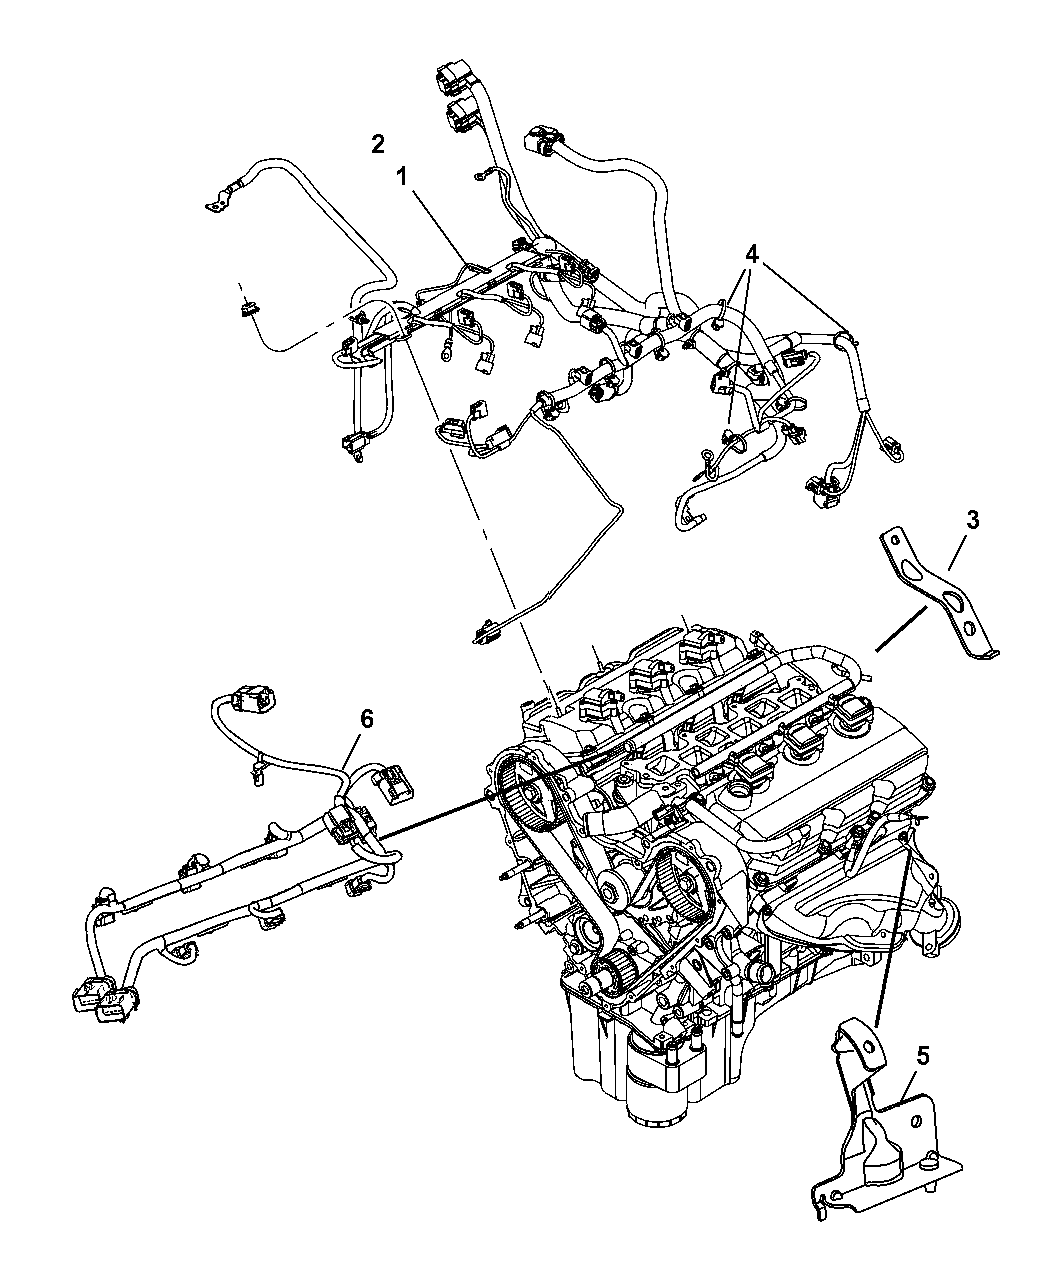 2006 Chrysler Pacifica Wiring - Engine